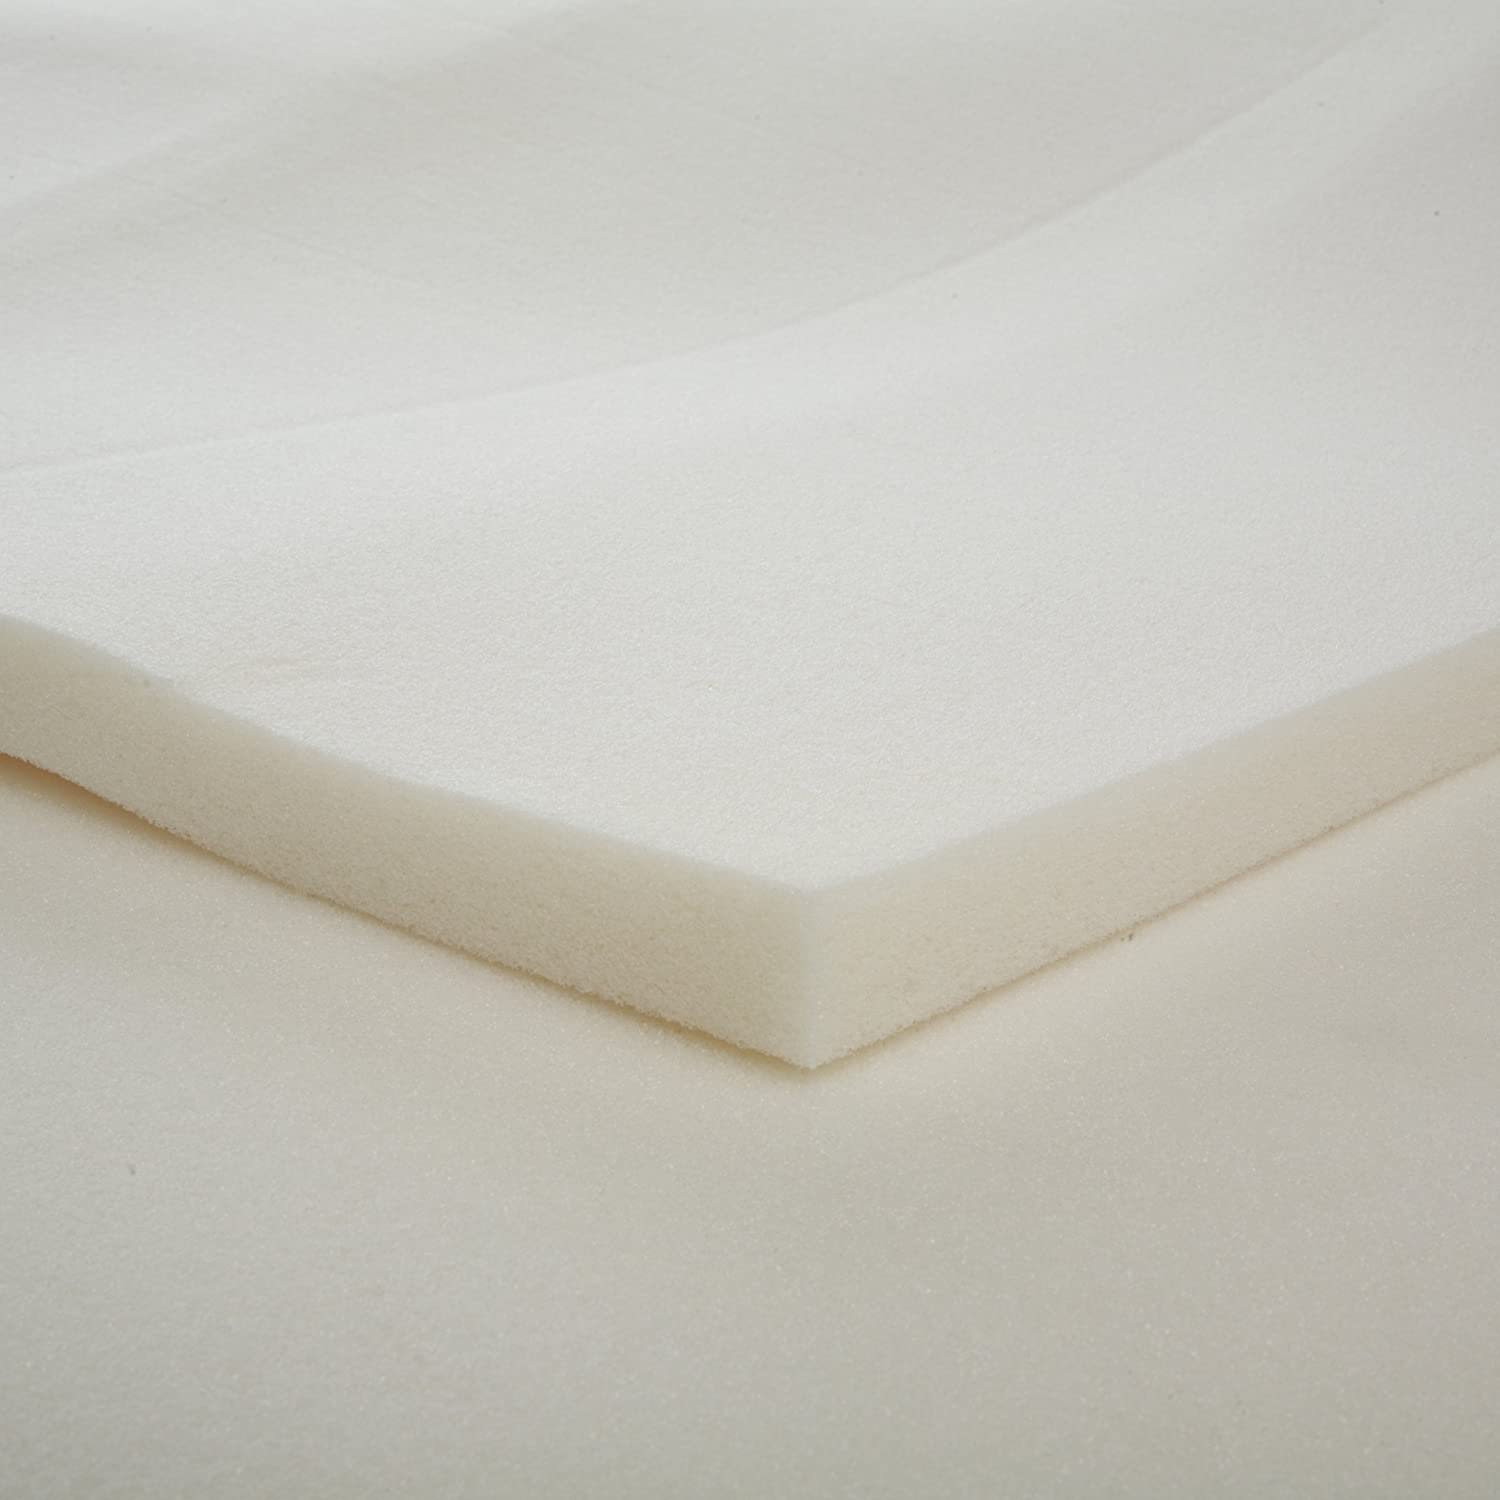 Are Memory Foam Mattresses Safe Memory-Foam-Bed-Bedding-Mattress-Topper-Pad-Padding-Support-Comfort-1 ...